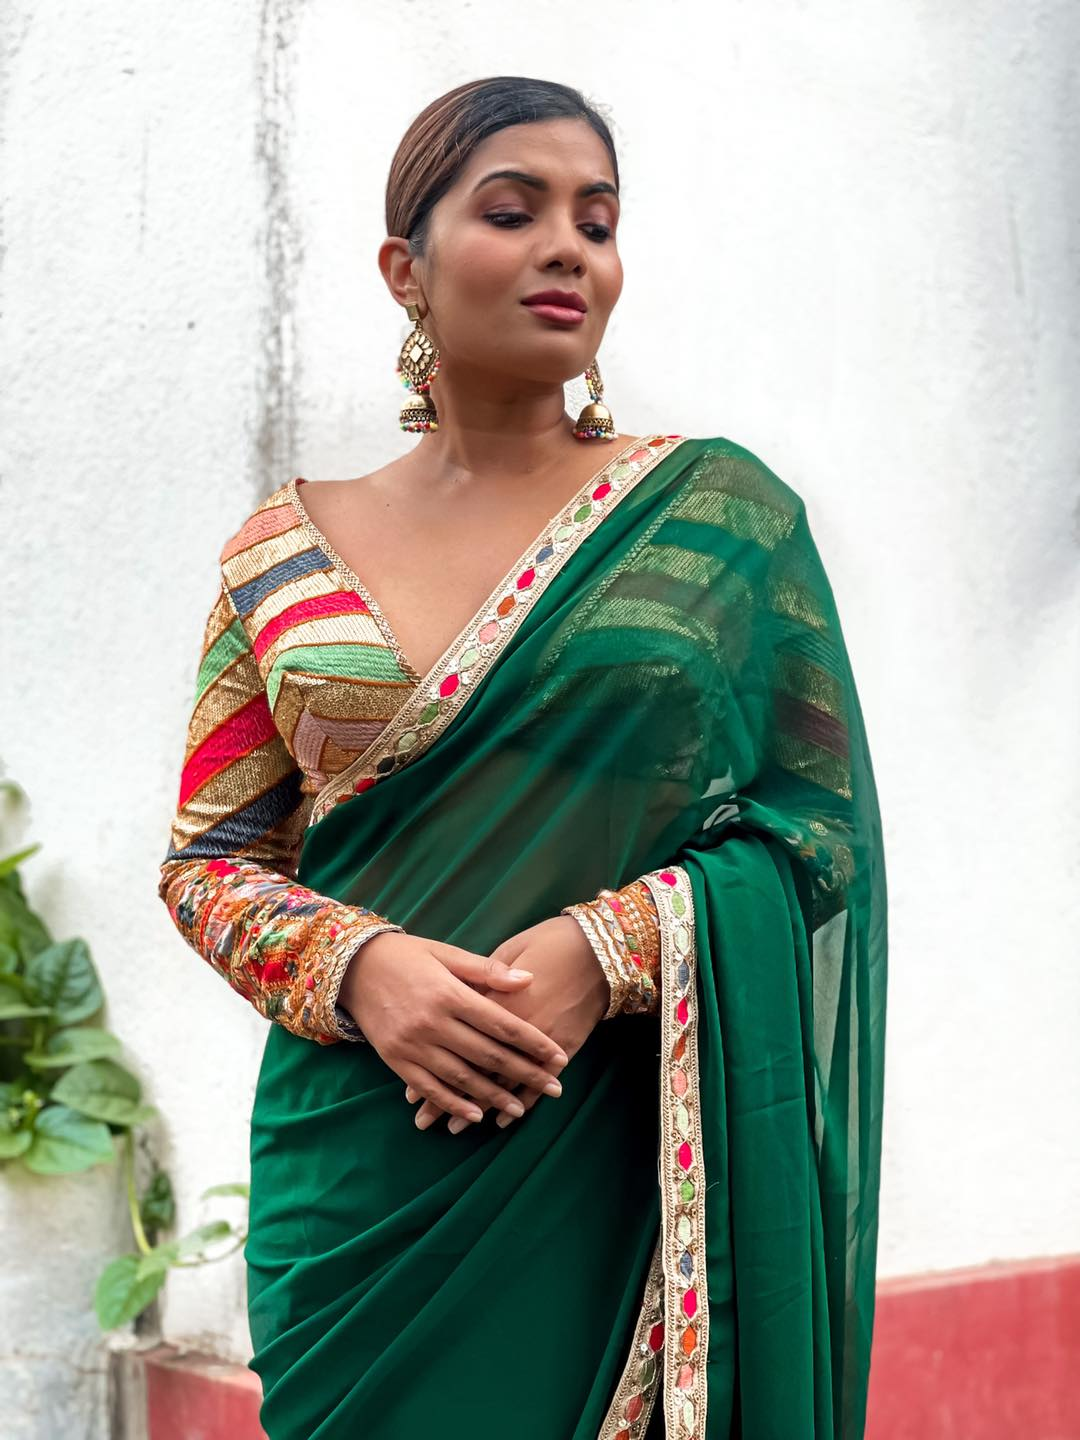 LEELA. Pure perfection in a sari! This is a deep emerald green georgette sari with a beautiful thread work sequin embroidered border in multi colors.  the blouse is a beautiful fully embroidered fabric with thread work and sequin work. The multicolor chevron and floral embroidery mix presents a beautiful juxtaposition of designs.   2021-09-11